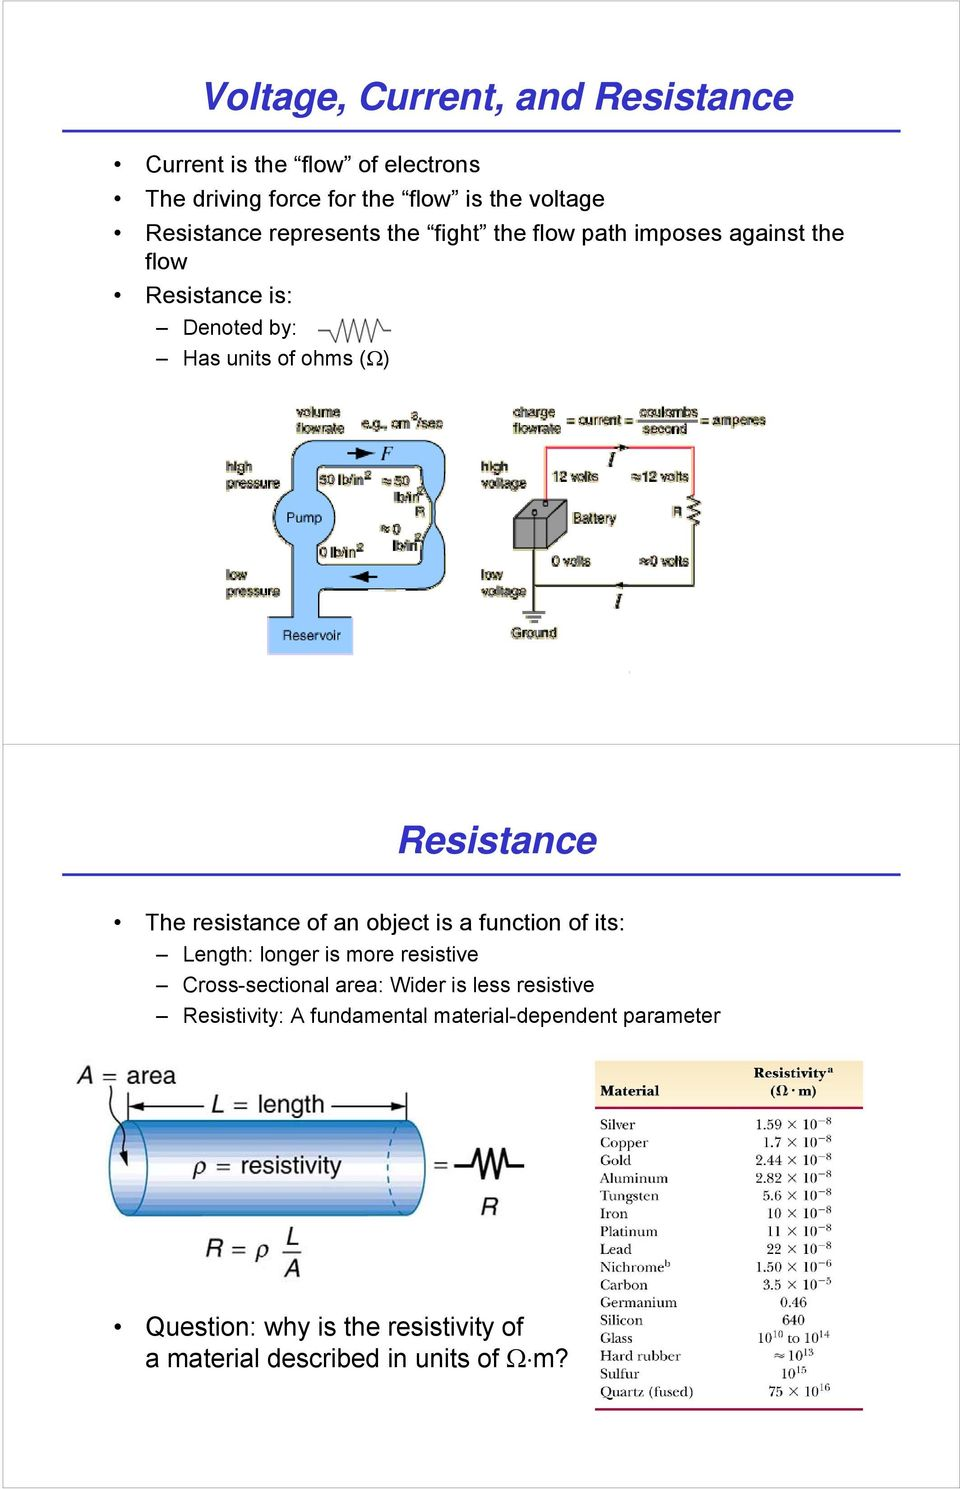 resistance of an object is a function of its: Length: longer is more resistive Cross-sectional area: Wider is less resistive